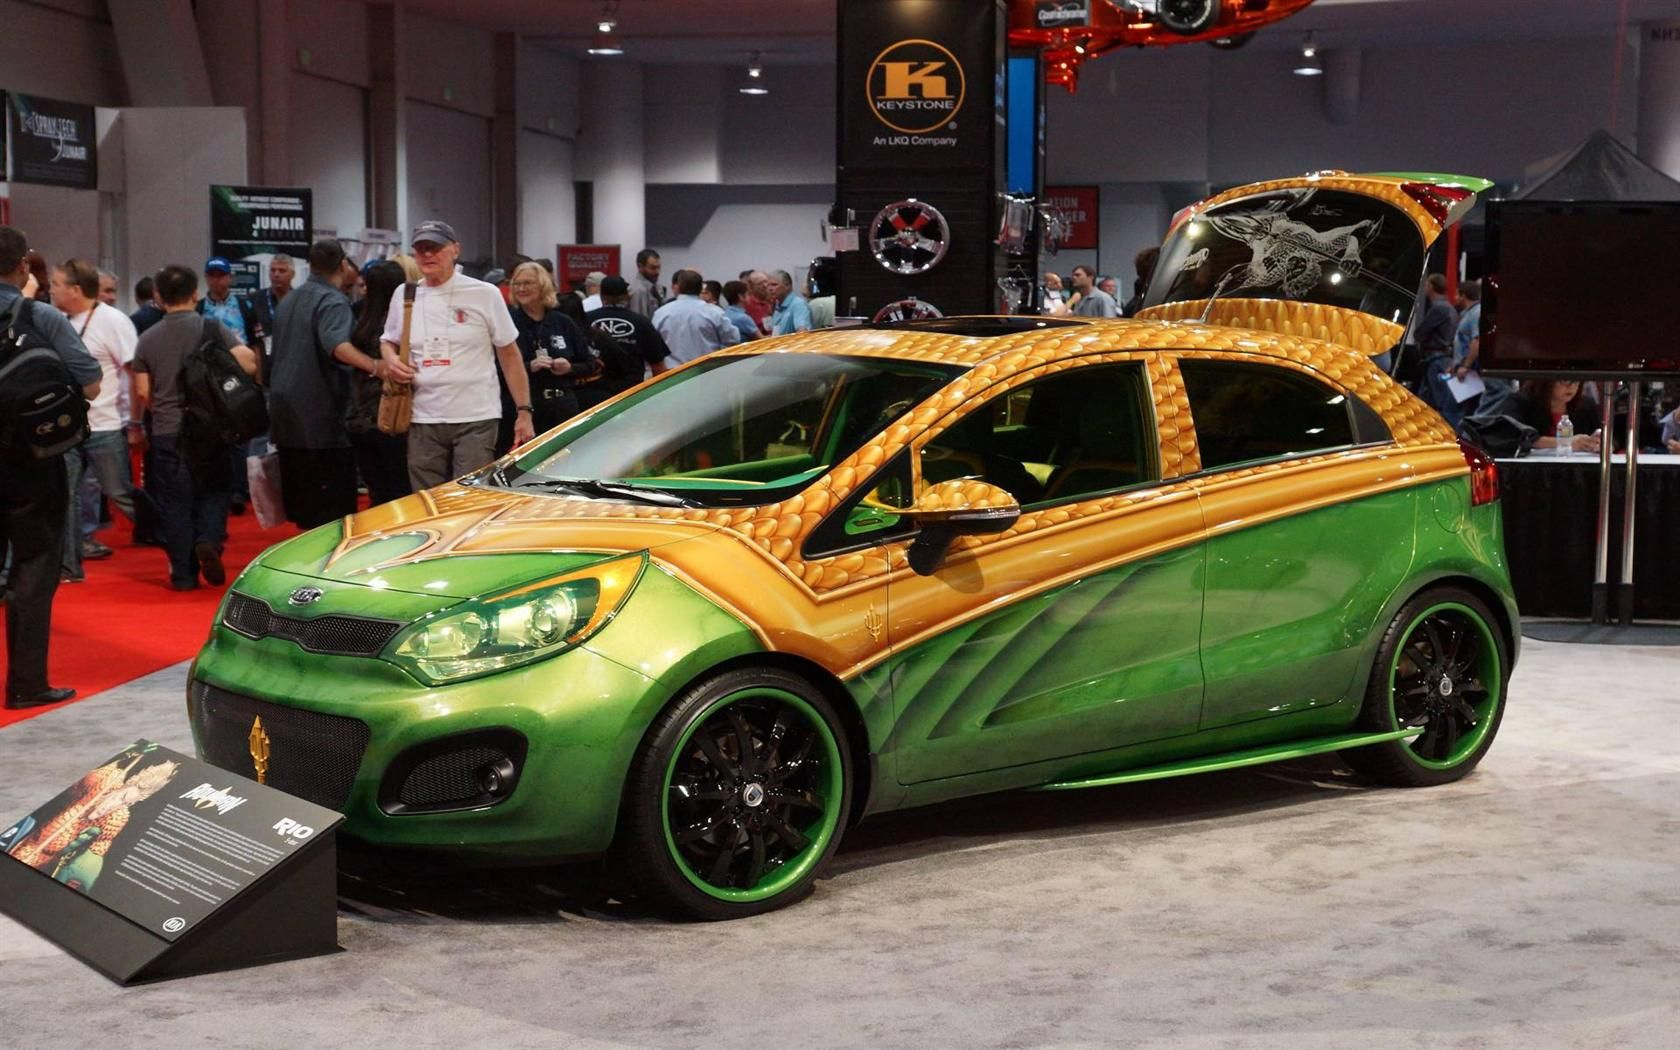 Kia Brings A Plethora Of Customized Vehicles To The 2018 Sema Show